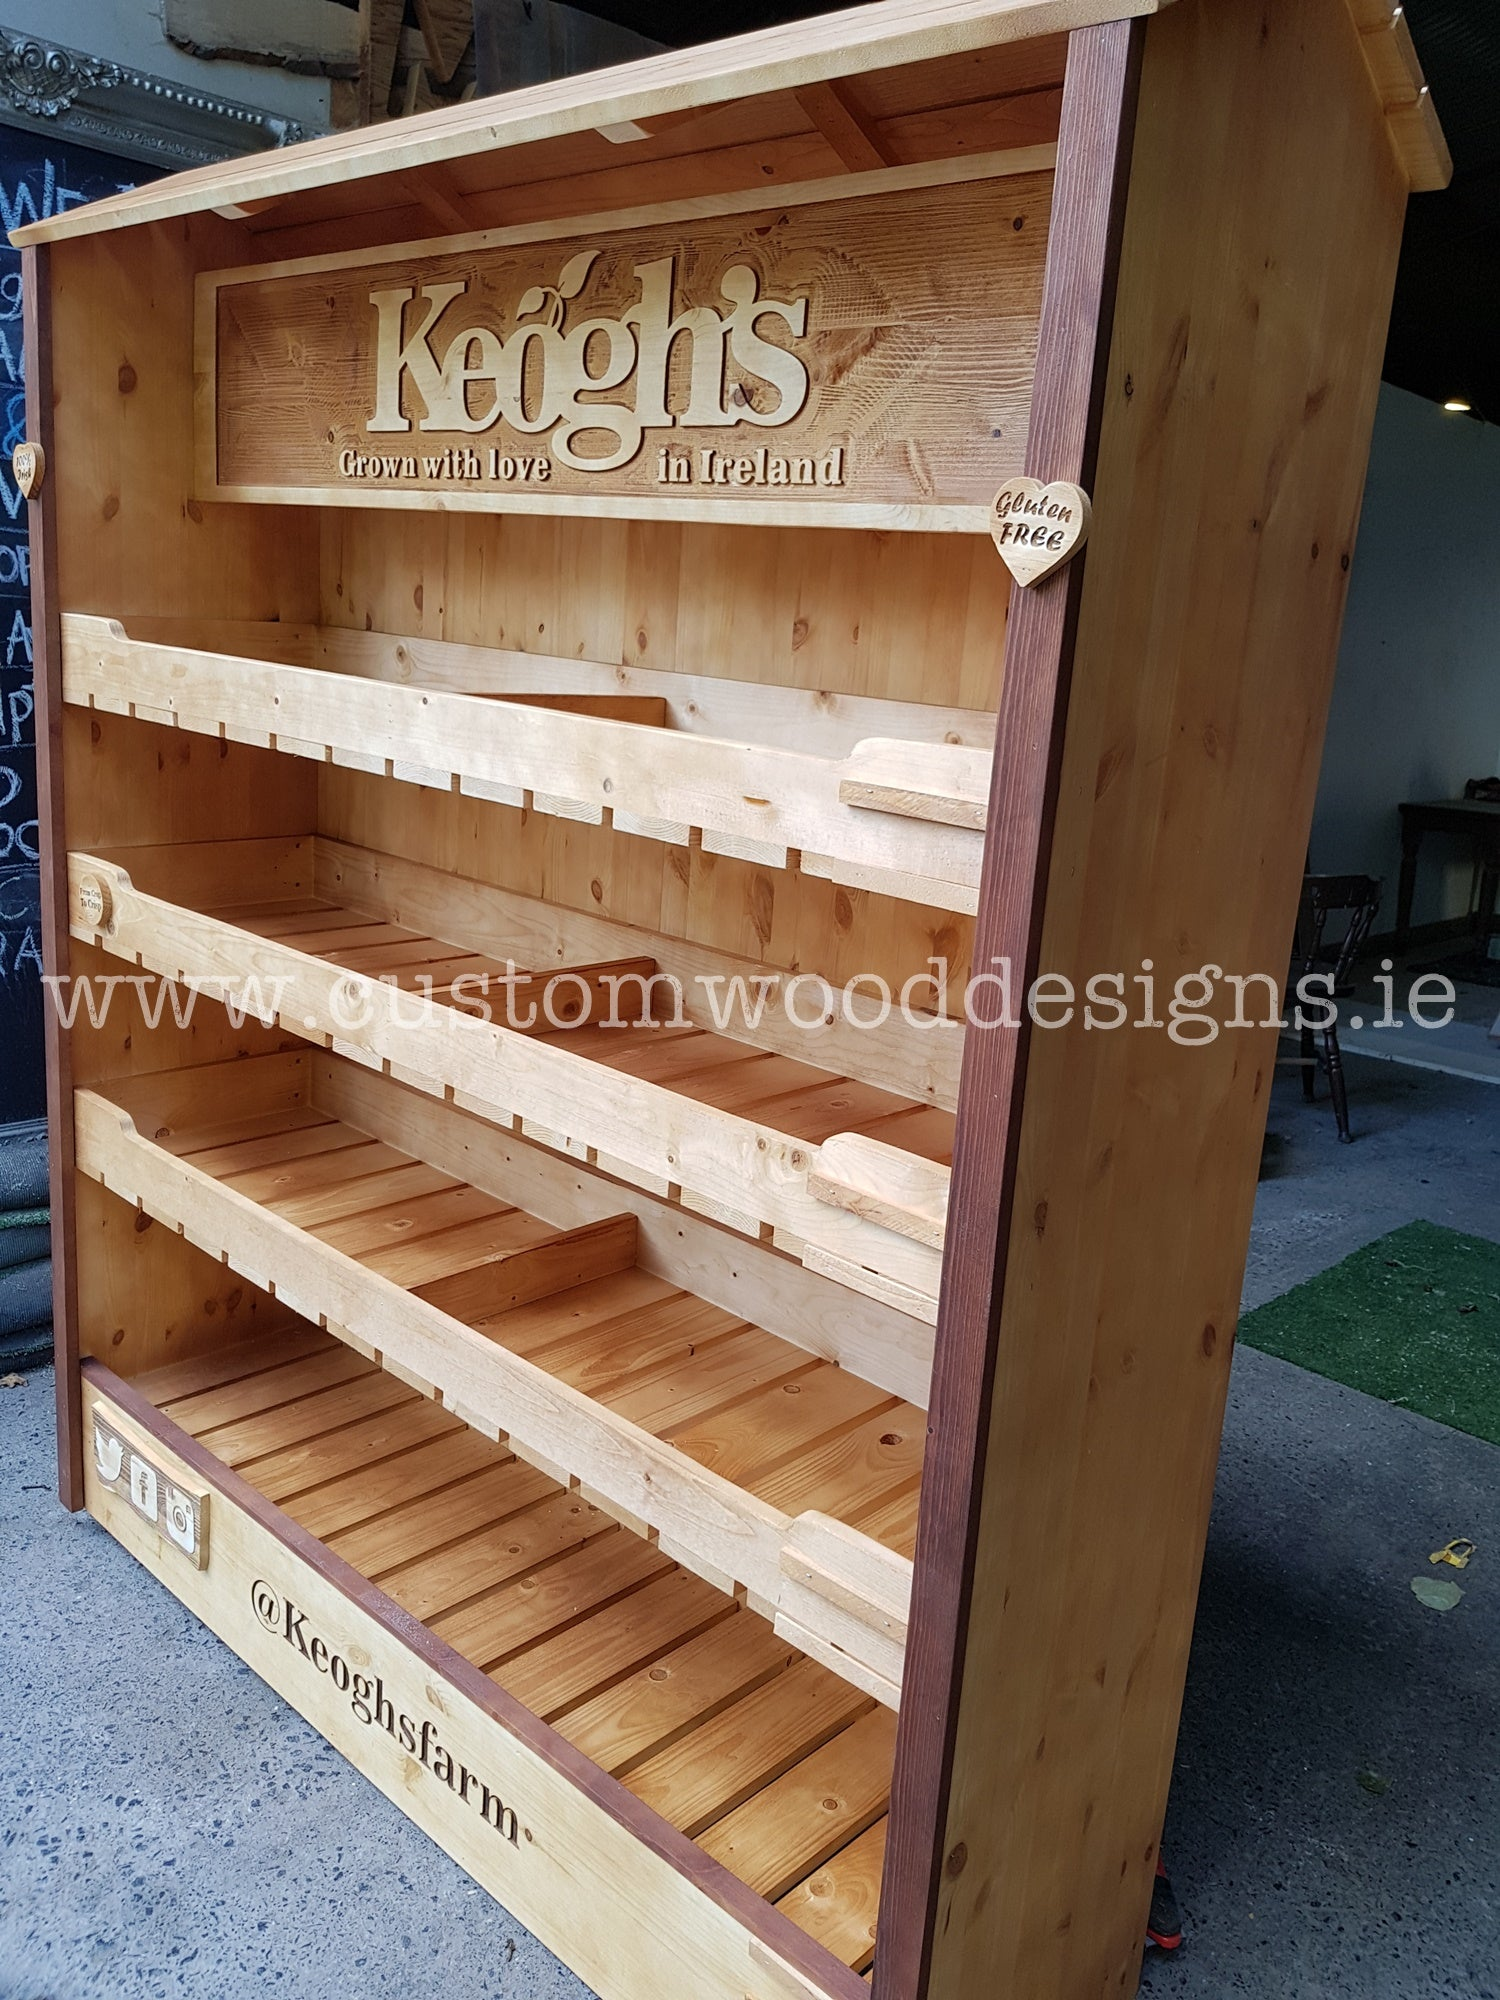 point of sale display irish manufacturer point od sale maker producer free standing unit display producer maker Ireland Dublin signs maker dublin beanding promotional product maker producer ireland dublin timber wooden festival stands the best sign amker ireland the best point of sale maker Dublin stuffing product wood promotional point of saele maker Dublin Ireland point of sale producer irish producer fsdu counter display units counter retail display specialists retail space display sepcialists retail wooden display shop wooden display maker manufacturer shop retail maker wood producer pint of sale branded crates branded items  keoghs keoghs point of sale display irish manufacturer point od sale maker producer free standing unit display producer maker Ireland Dublin signs maker dublin beanding promotional product maker producer ireland dublin timber wooden festival stands the best sign amker ireland the best point of sale maker Dublin stuffing product wood promotional point of saele maker Dublin Ireland point of sale producer irish producer fsdu counter display units counter retail display specialists retail space display sepcialists retail wooden display shop wooden display maker manufacturer shop retail maker wood producer pint of sale branded crates branded items